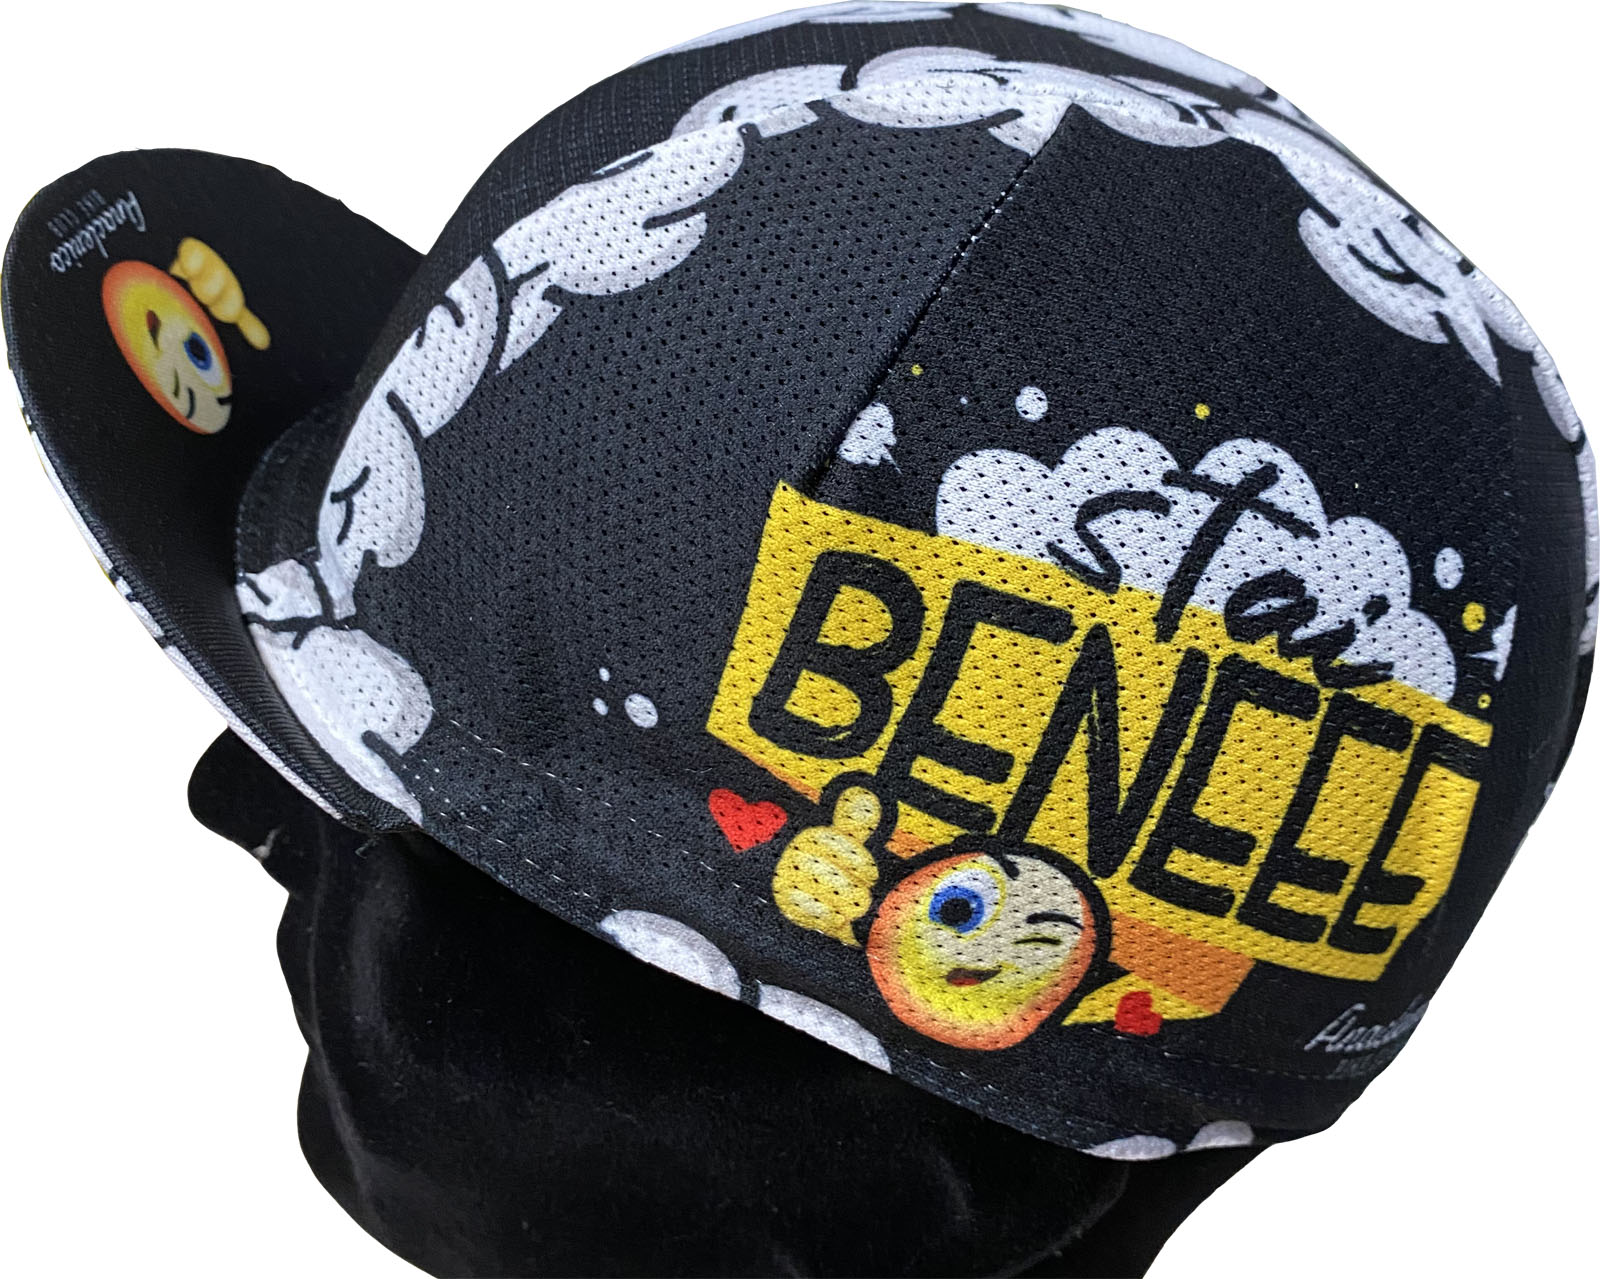 Cycling Cap ABC Anaclerico Sports STAI BENEEE ABC ANACLERICO SPORT BYKE CLUB | 270000046 | STAIBENEEEE-